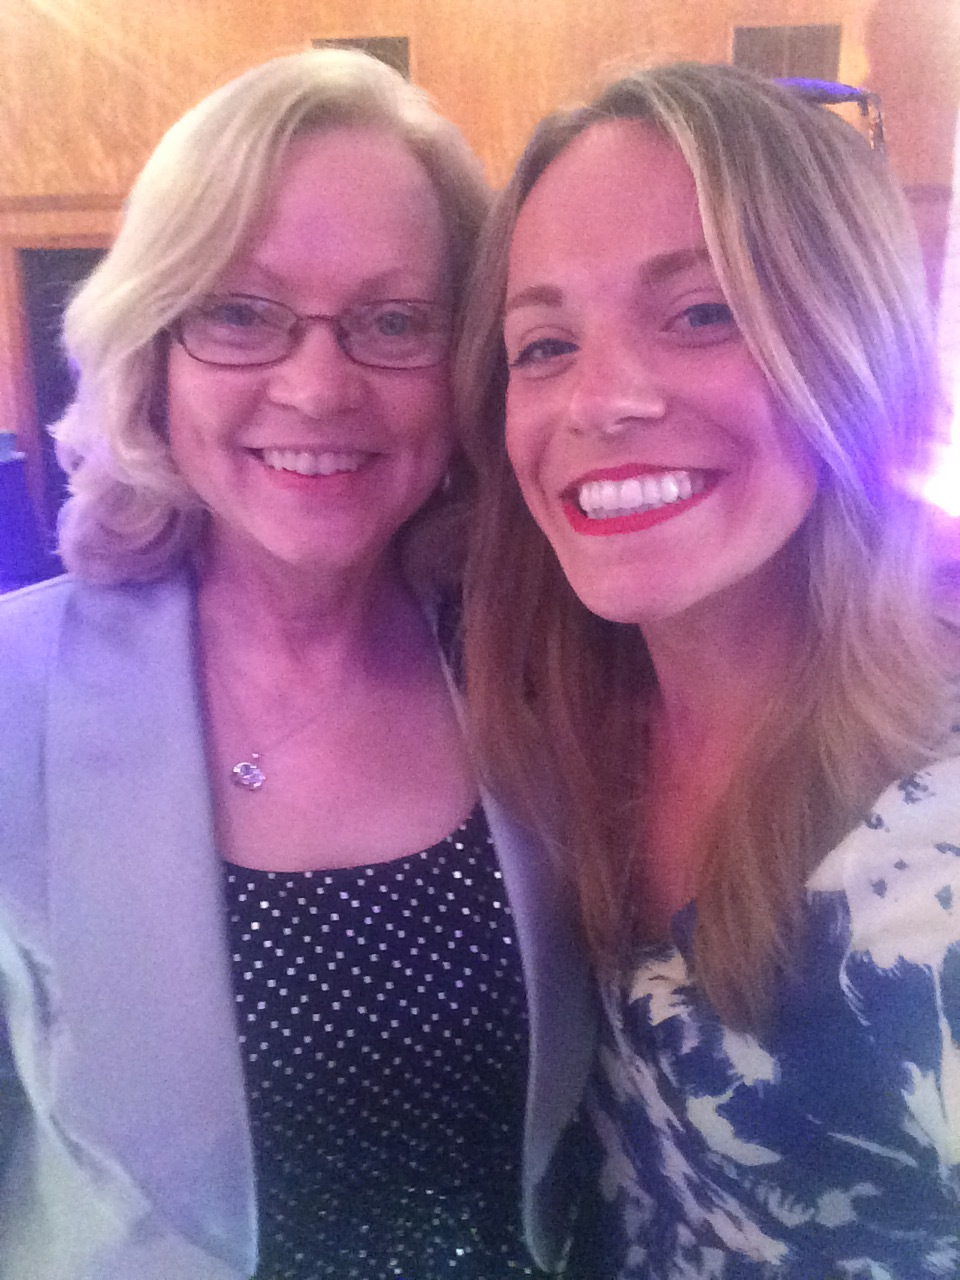 Mom & me at my cousin's wedding, 2016, Texas